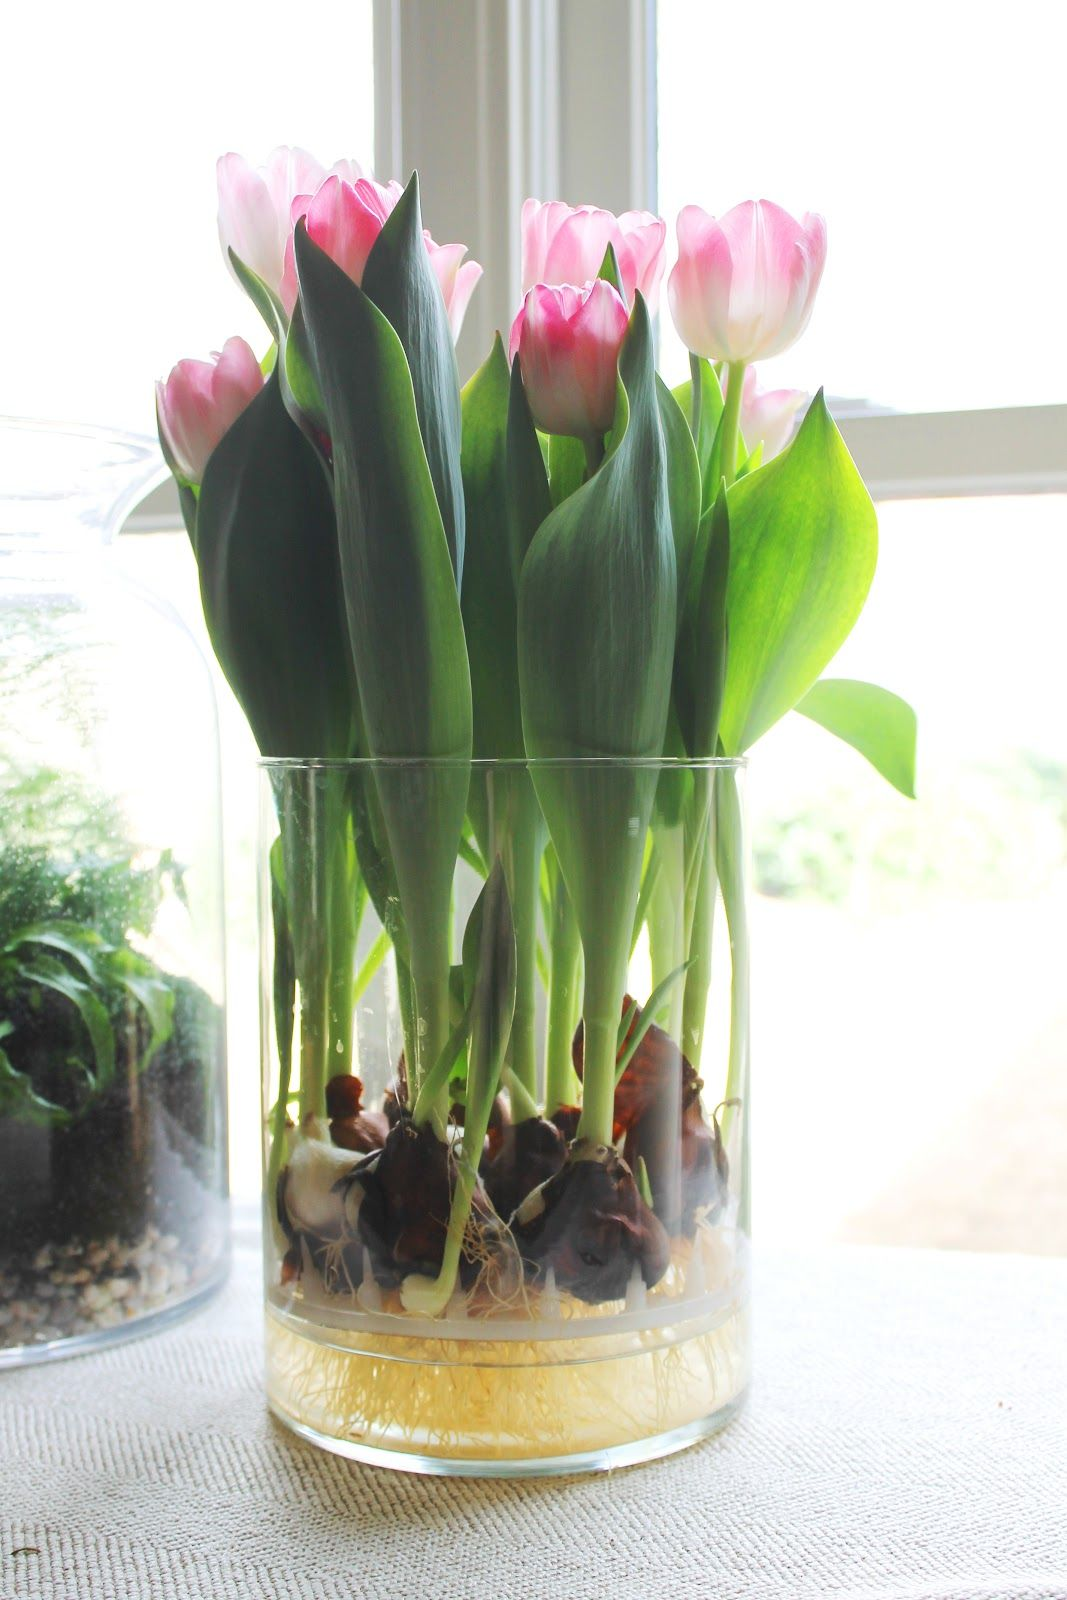 Bulbs in glass vase google search house ideas for Indoor gardening flowers